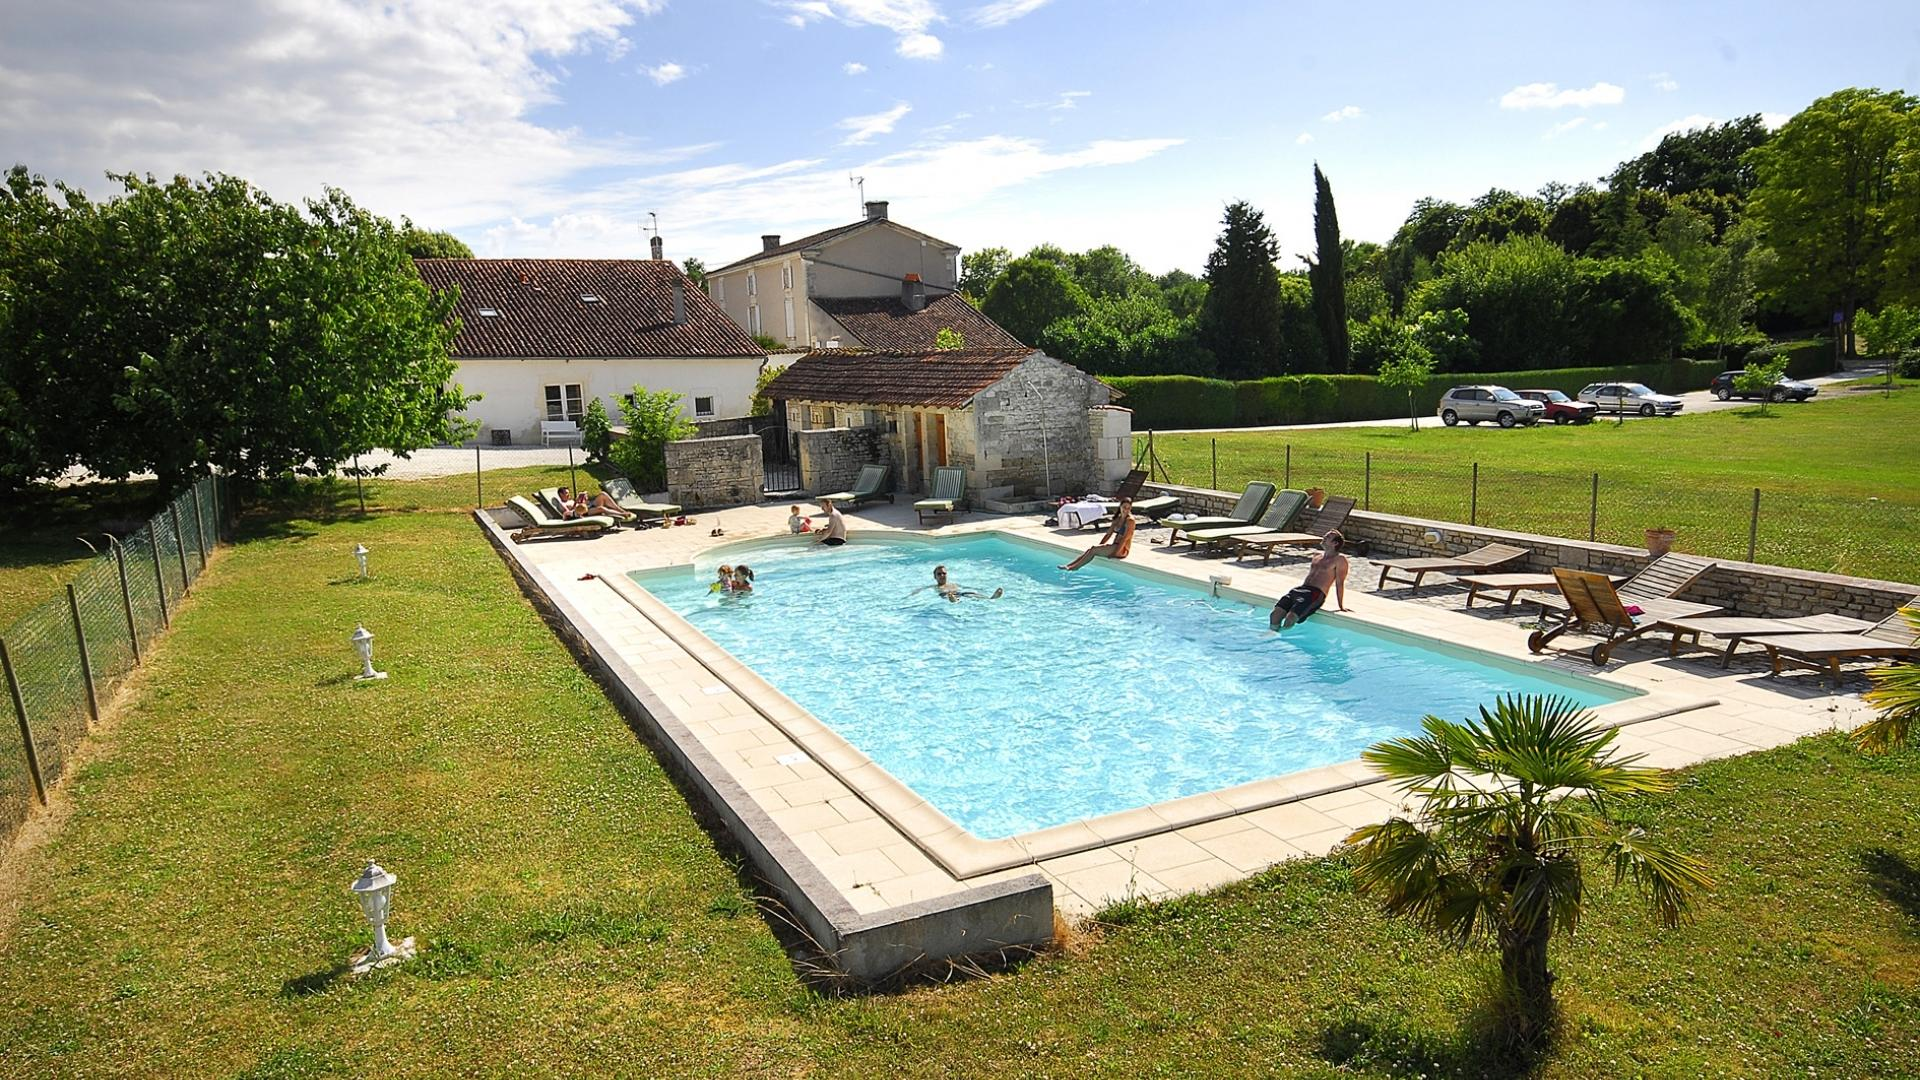 1 Bedroom Cottage/shared facilities in Poitou-Charentes, France